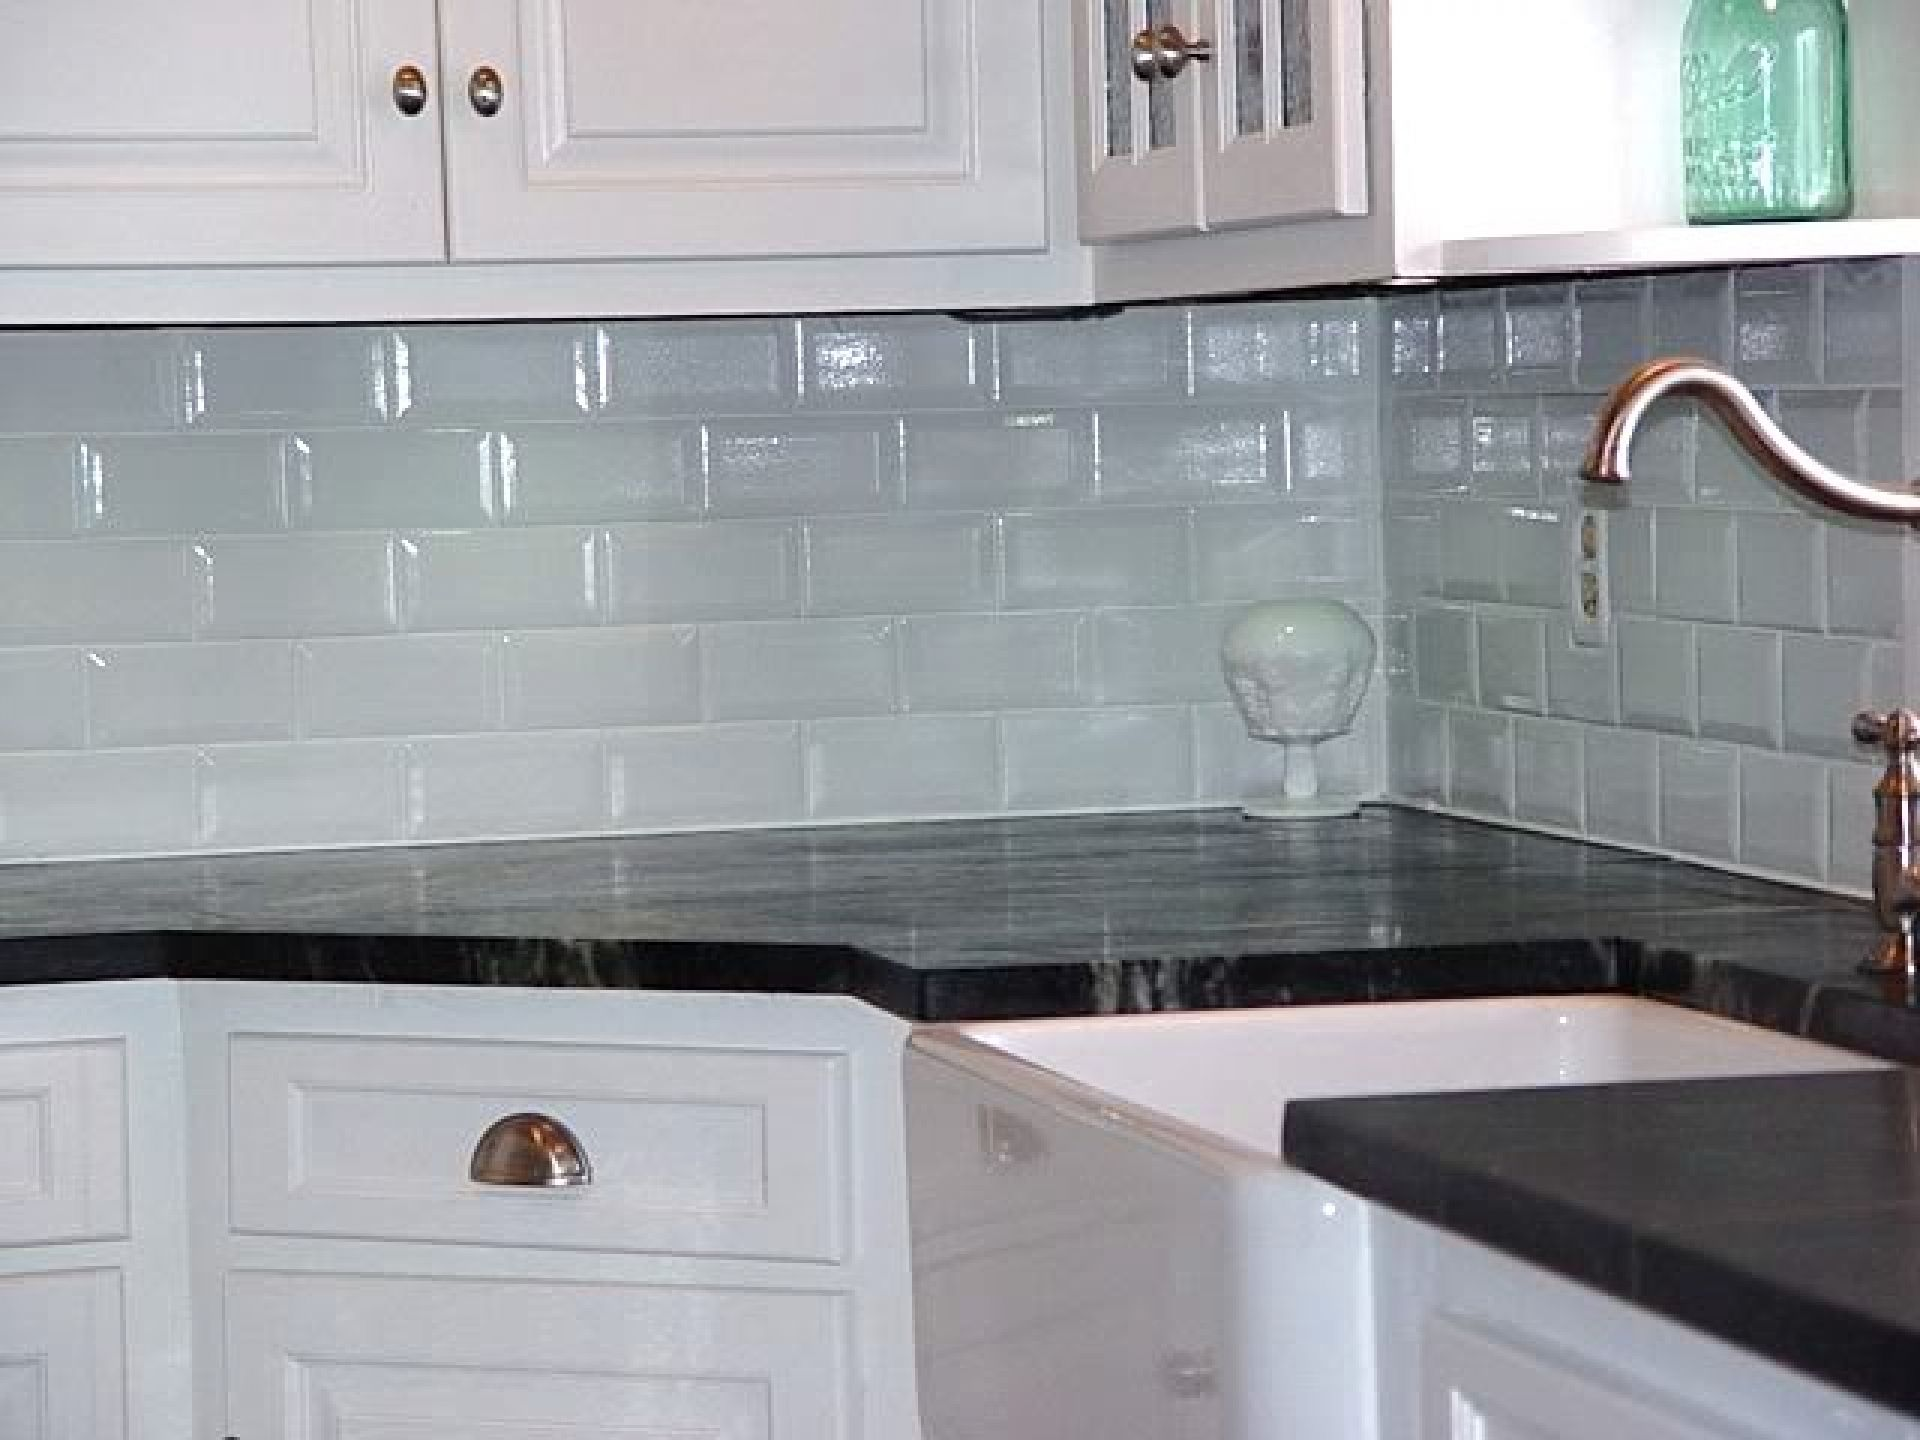 Kitchen Backsplash Subway Tile Patterns white glosssy subway tiles backsplash kitchen for small l spahed